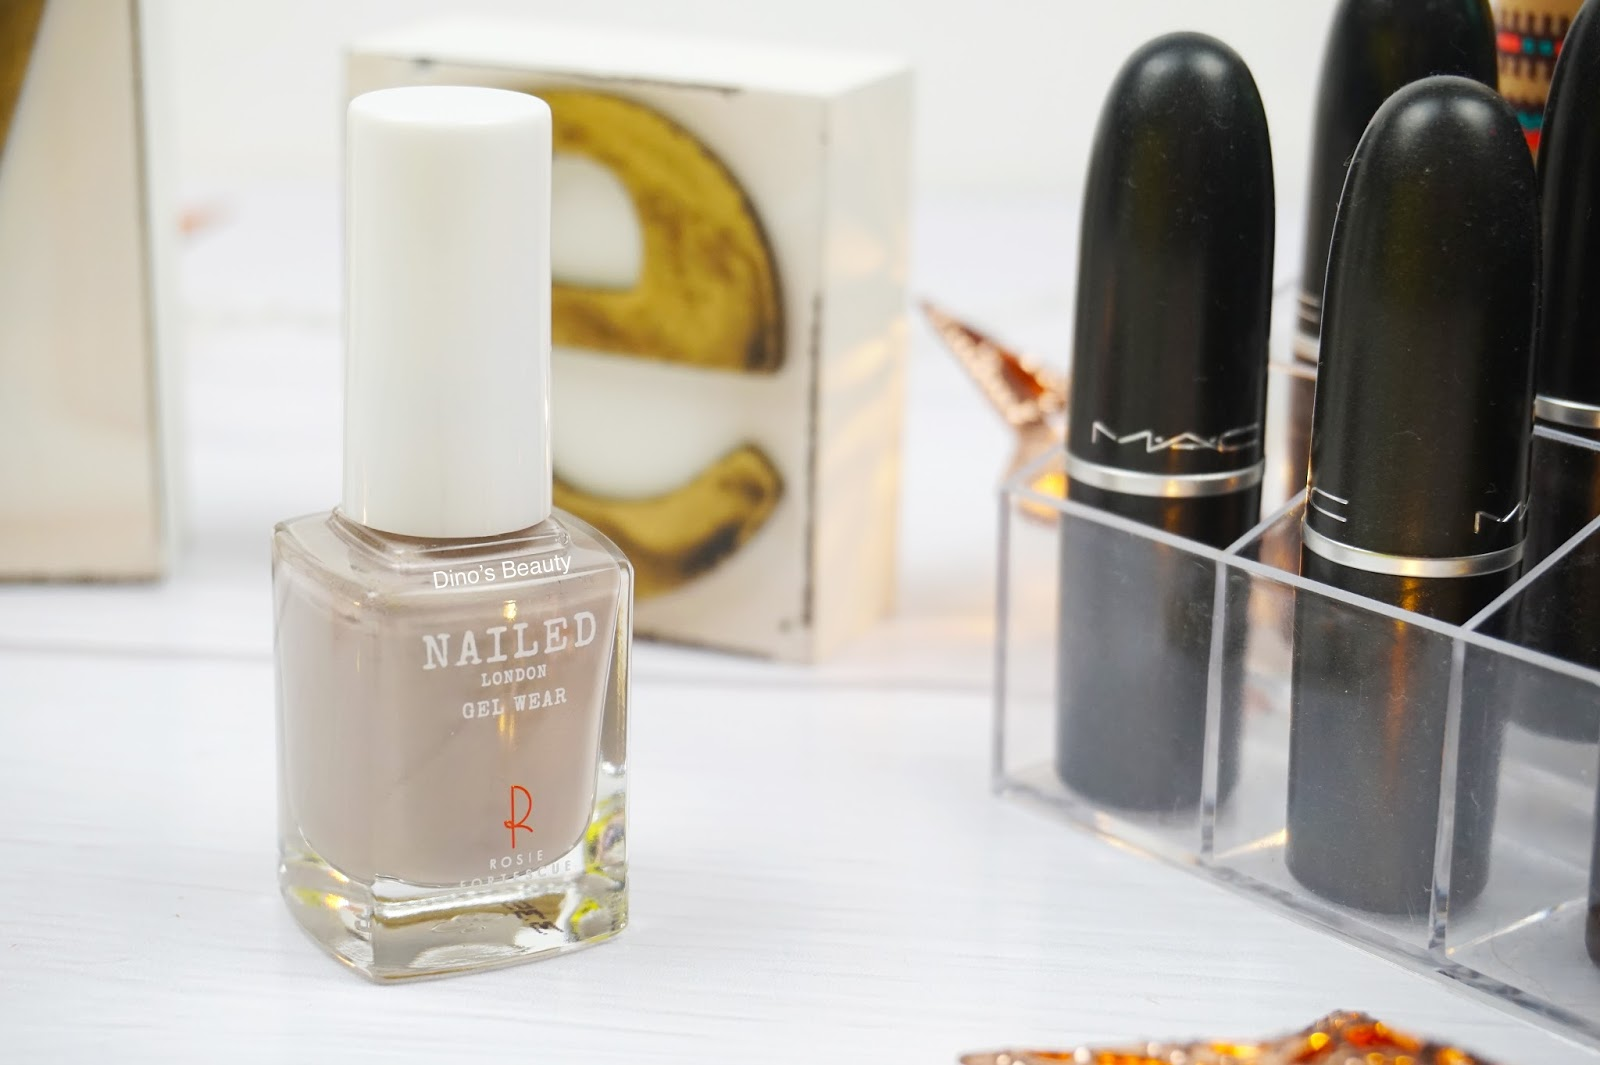 bbloggers, beauty, beauty bloggers, beauty review, NAILED, NAILED London, Manicure, Manicure Mondays, Gel Nails, Gel Look, Nails, Nail Polish, Rosie Fortescue, Made In Chelsea, Swatches, Noodle Nude, Dirty Blonde, Fifty Shades, Eye Candy, Thigh High Club